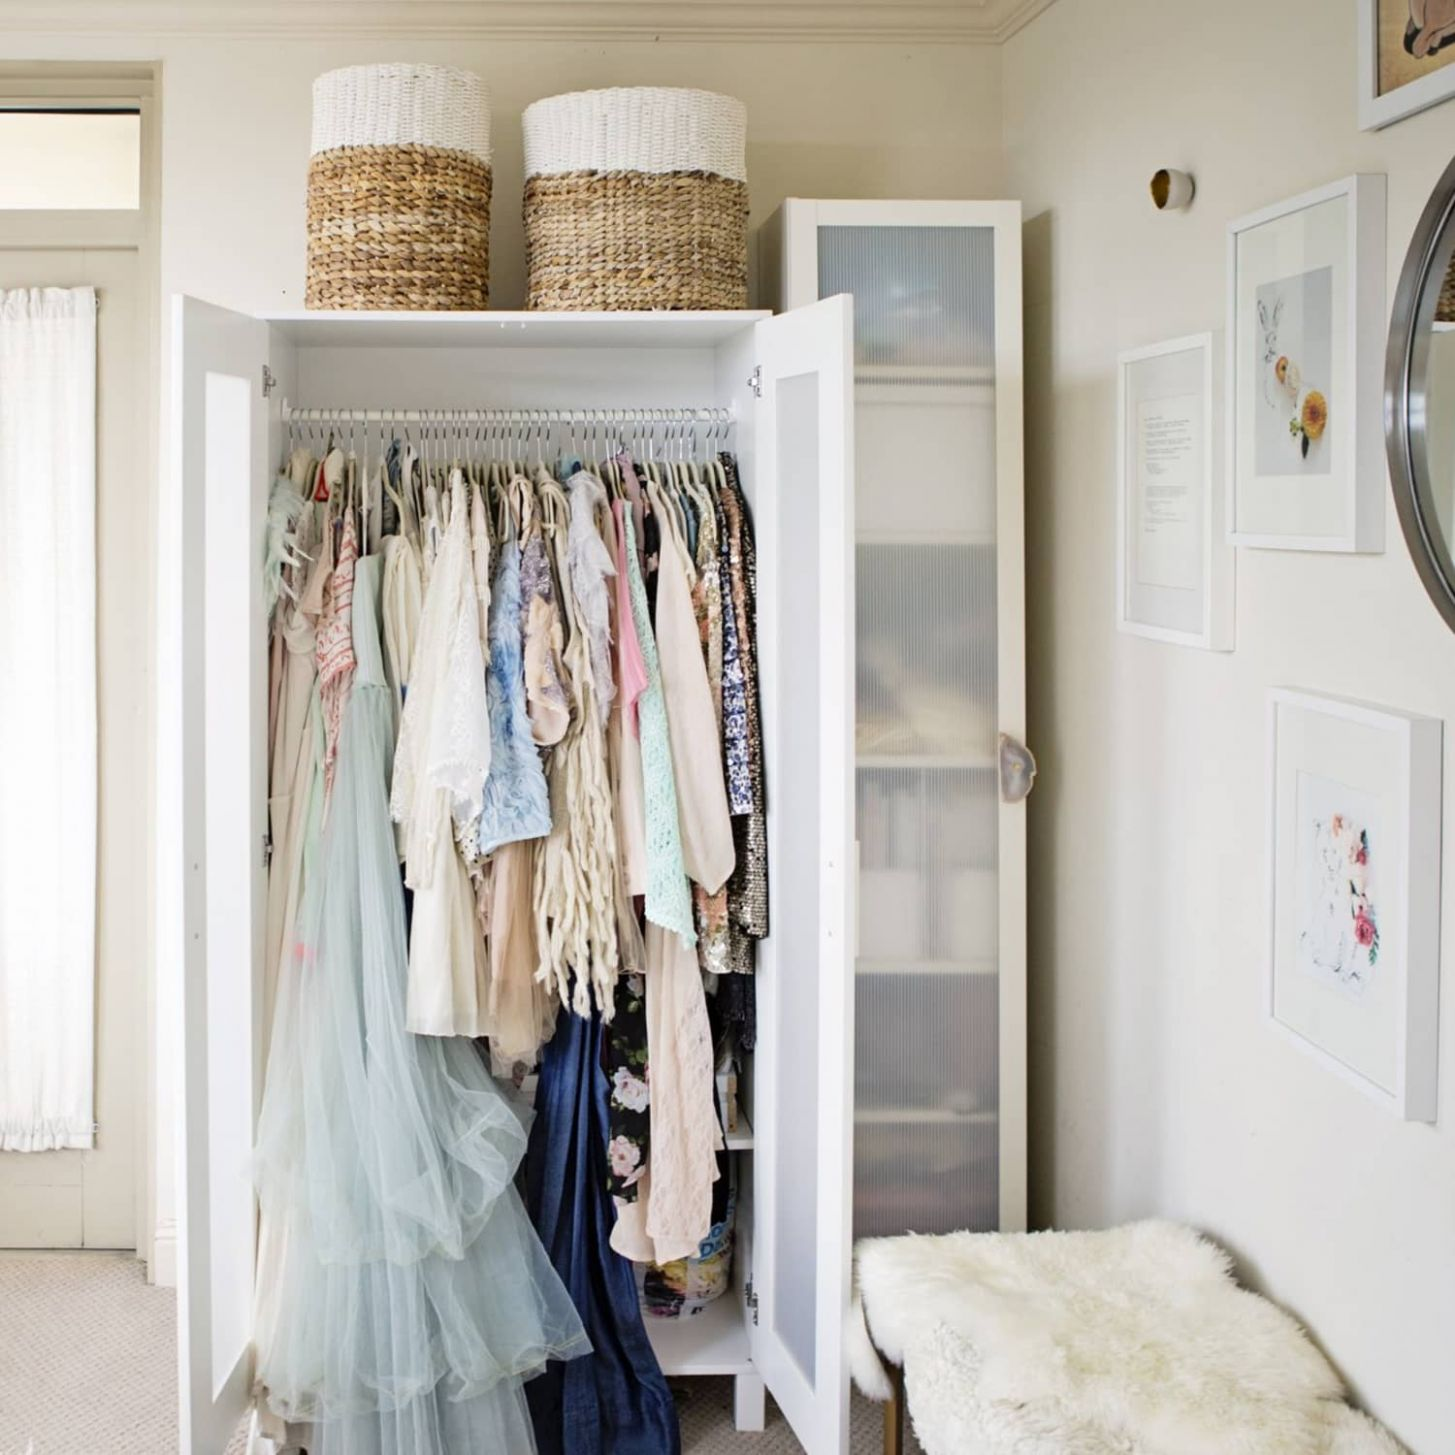 How to Create a Closet in a Small Space | Apartment Therapy